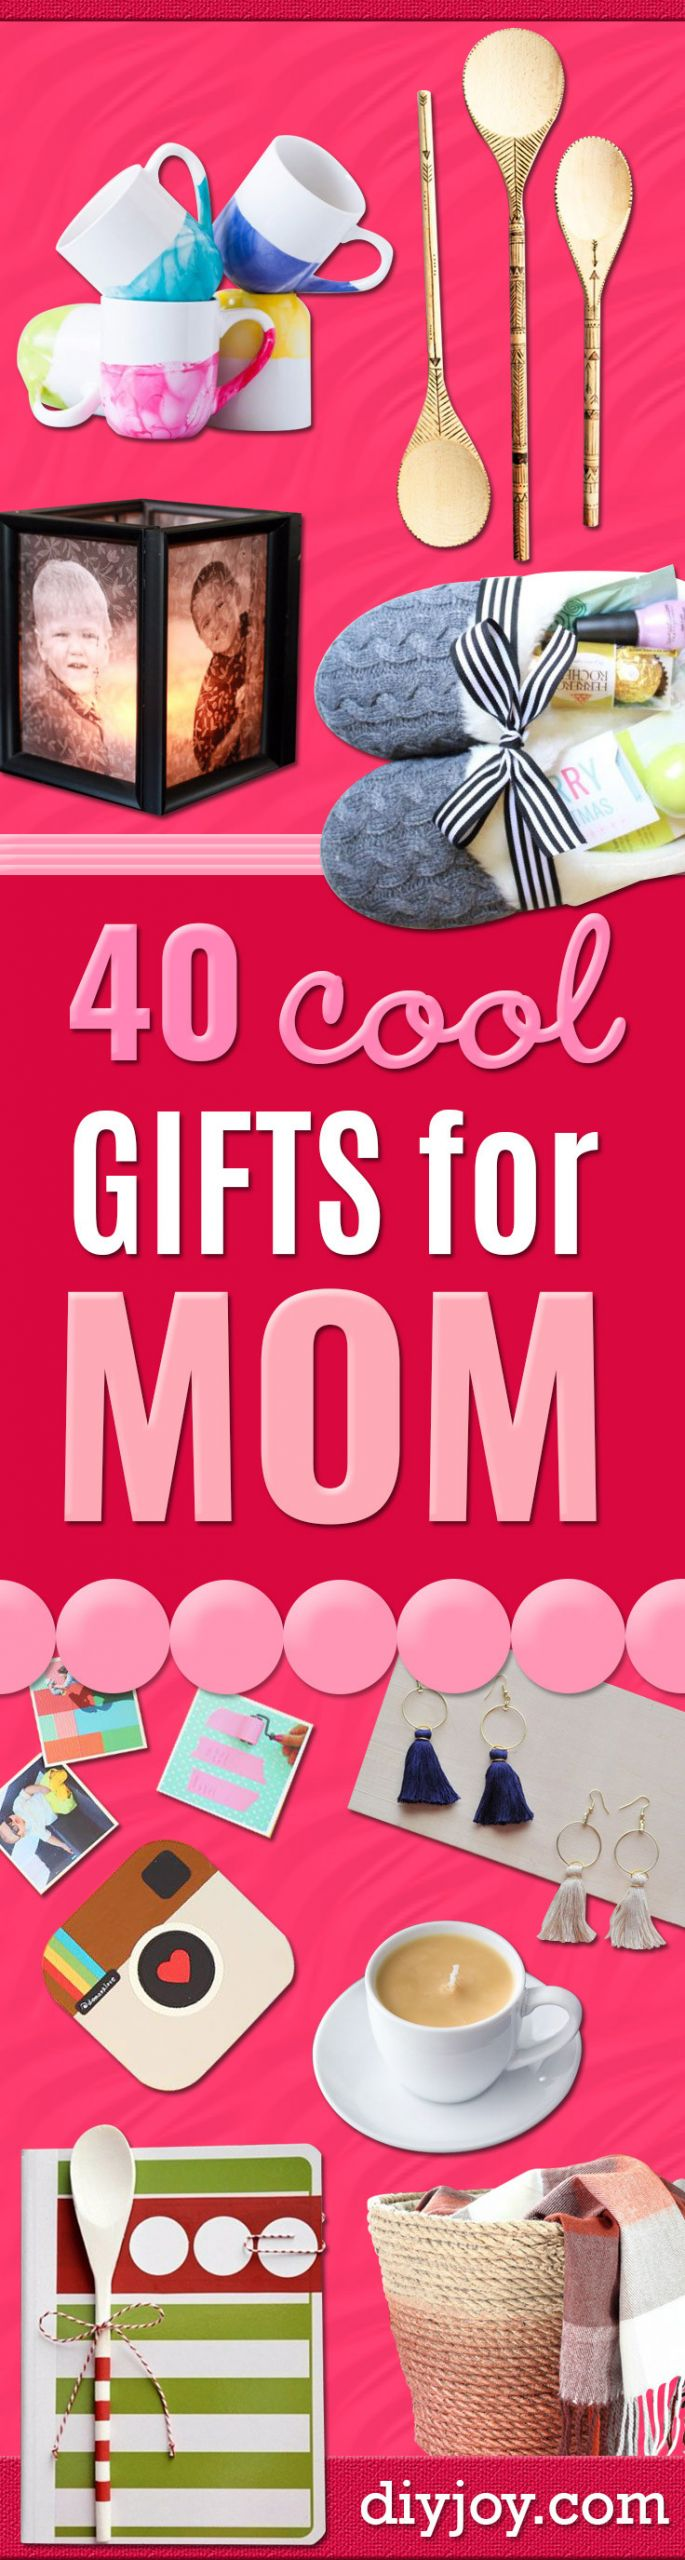 DIY Gift For Your Mom  40 Coolest Gifts To Make for Mom